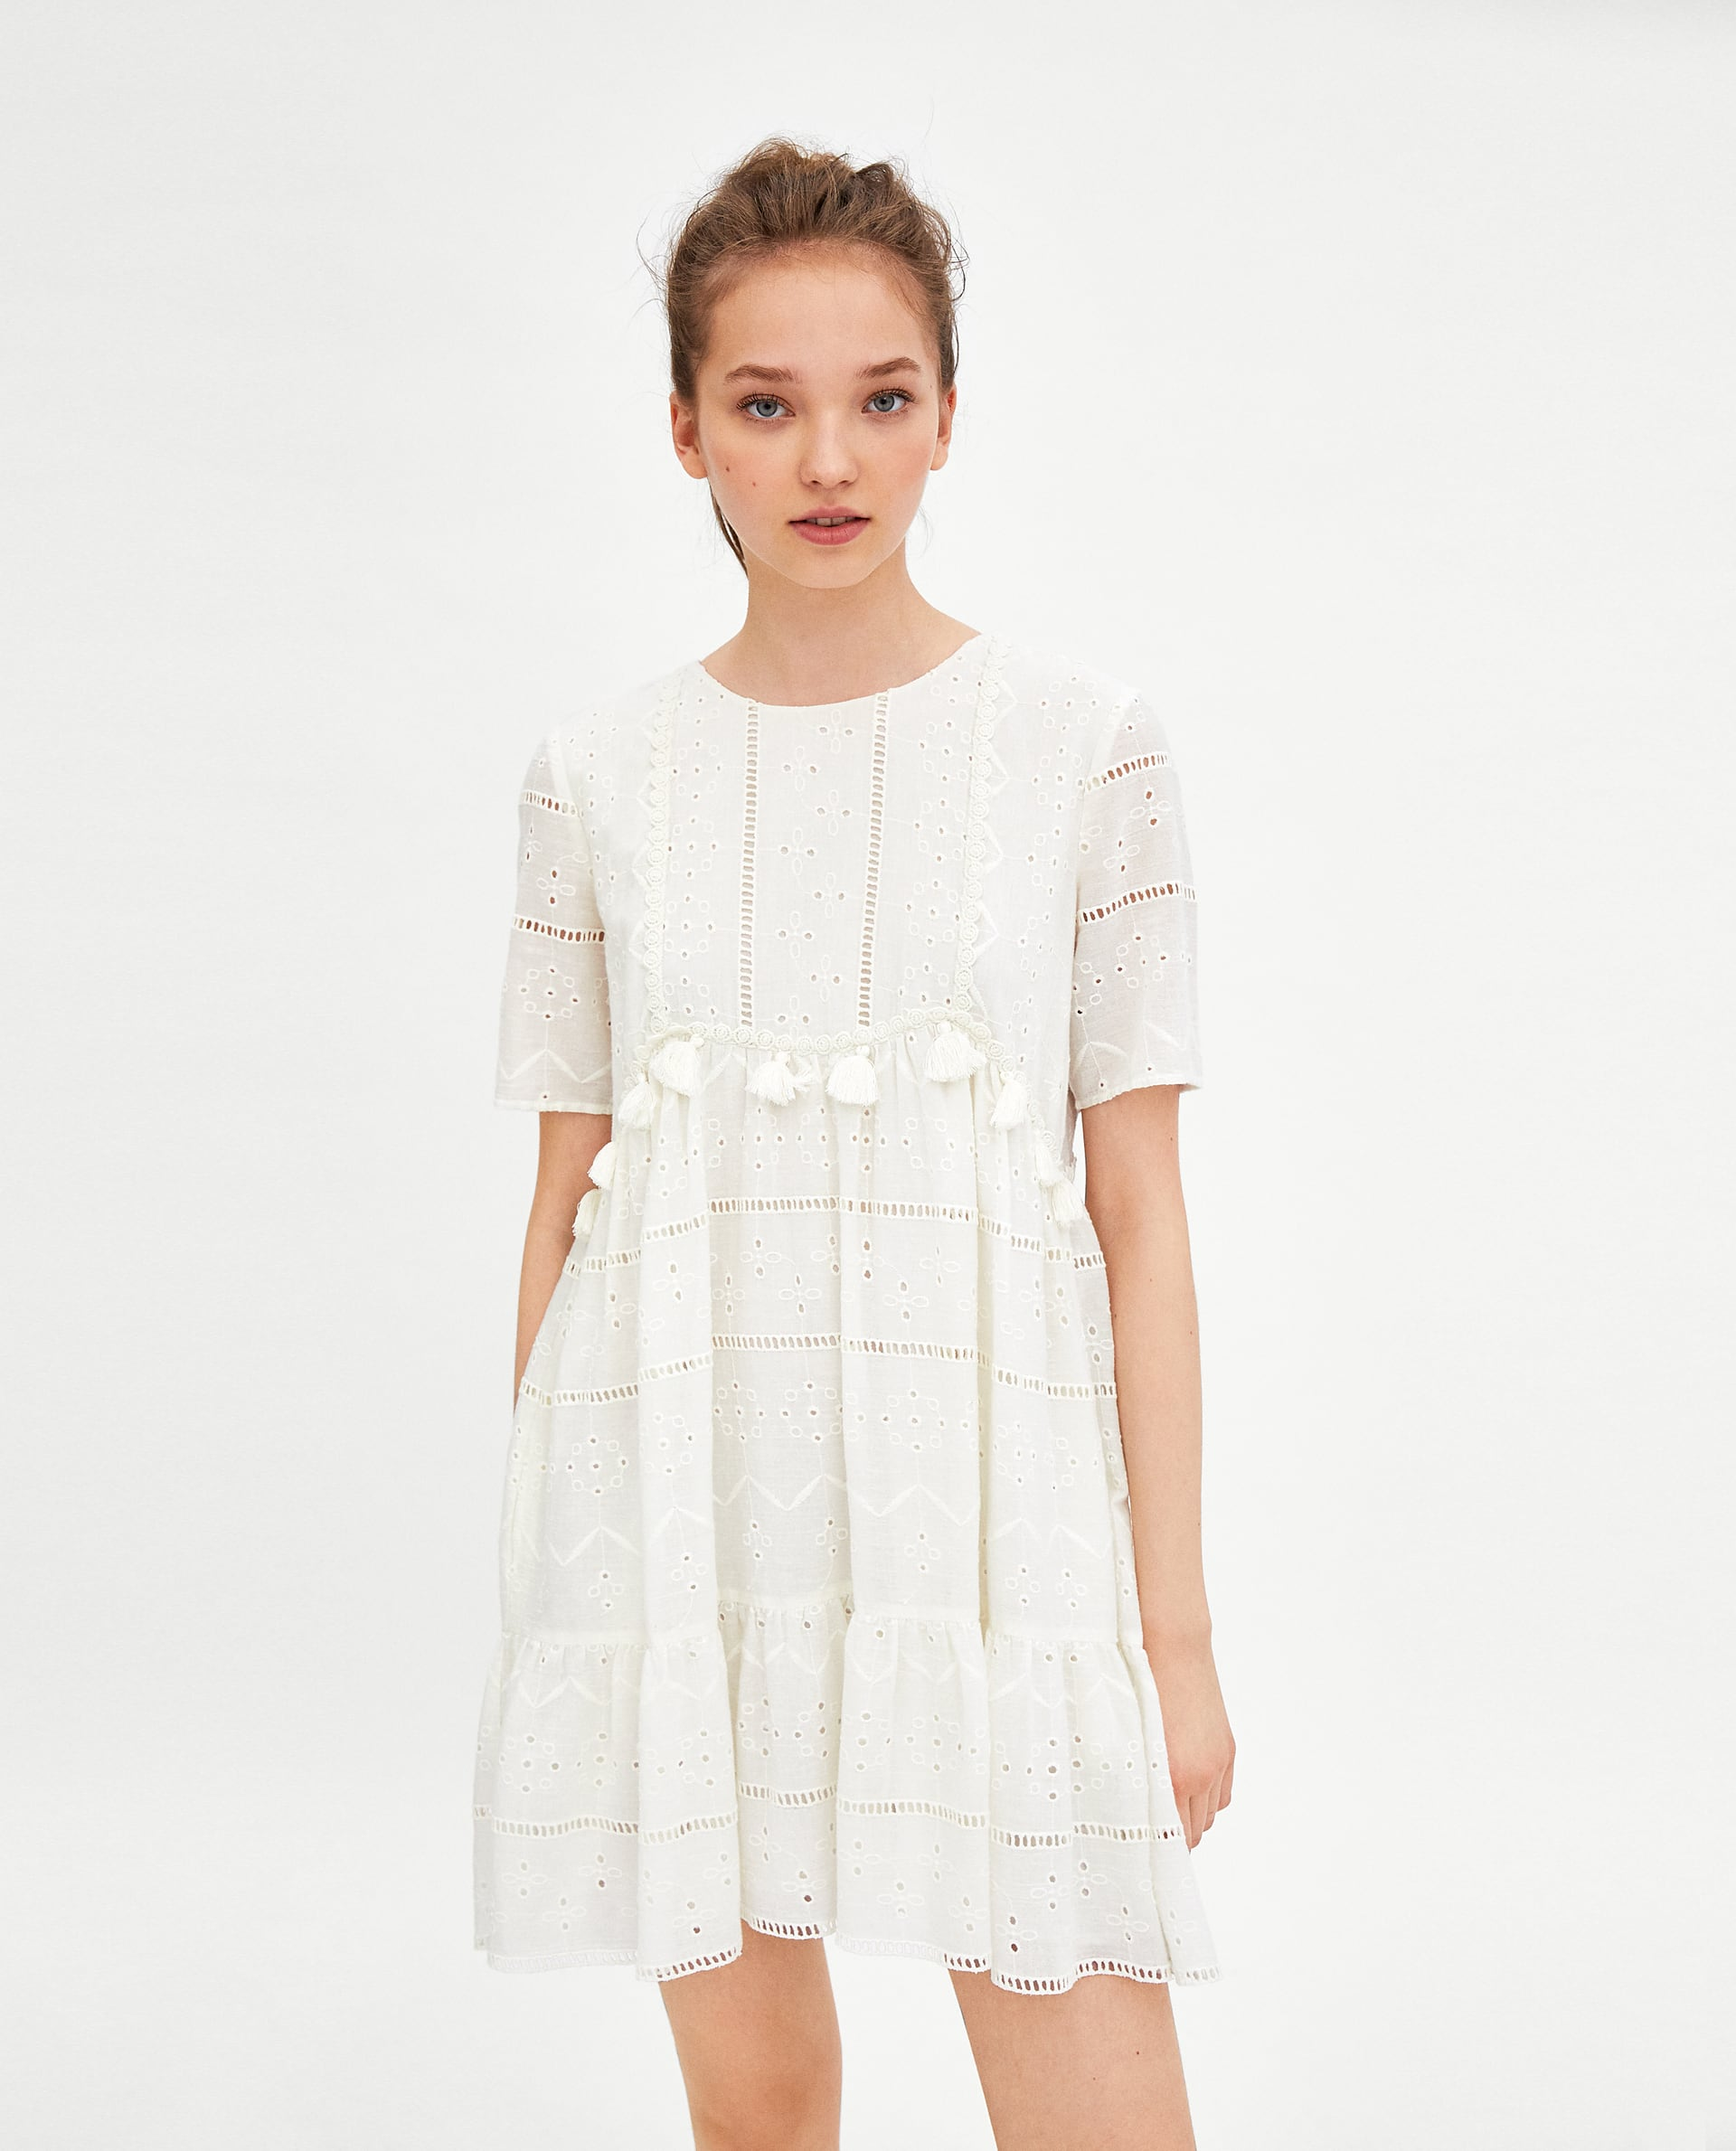 We have found the perfect white summer dress and its 40 from zara this light embroidered white dress with tassels is perfect for throwing over a bikini or dressing up with a glam sandal heel and drop earrings for a late mightylinksfo